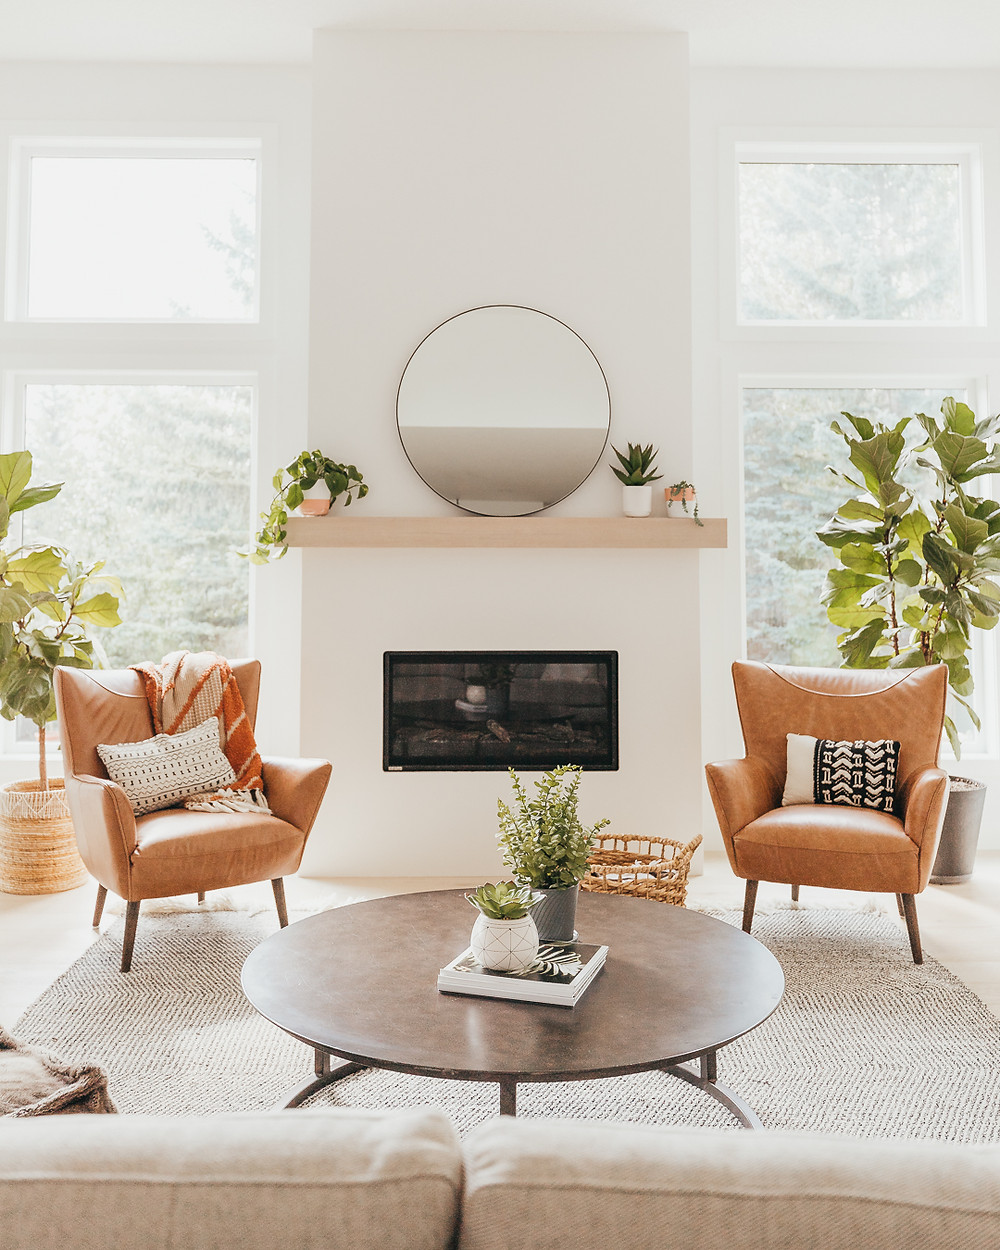 two leather armchairs on either side of fireplace wood mantle with round black mirror and plants in pots cream sofa with round wood coffee table with magazine stack and two plants area rug fiddle leaf fig in corner